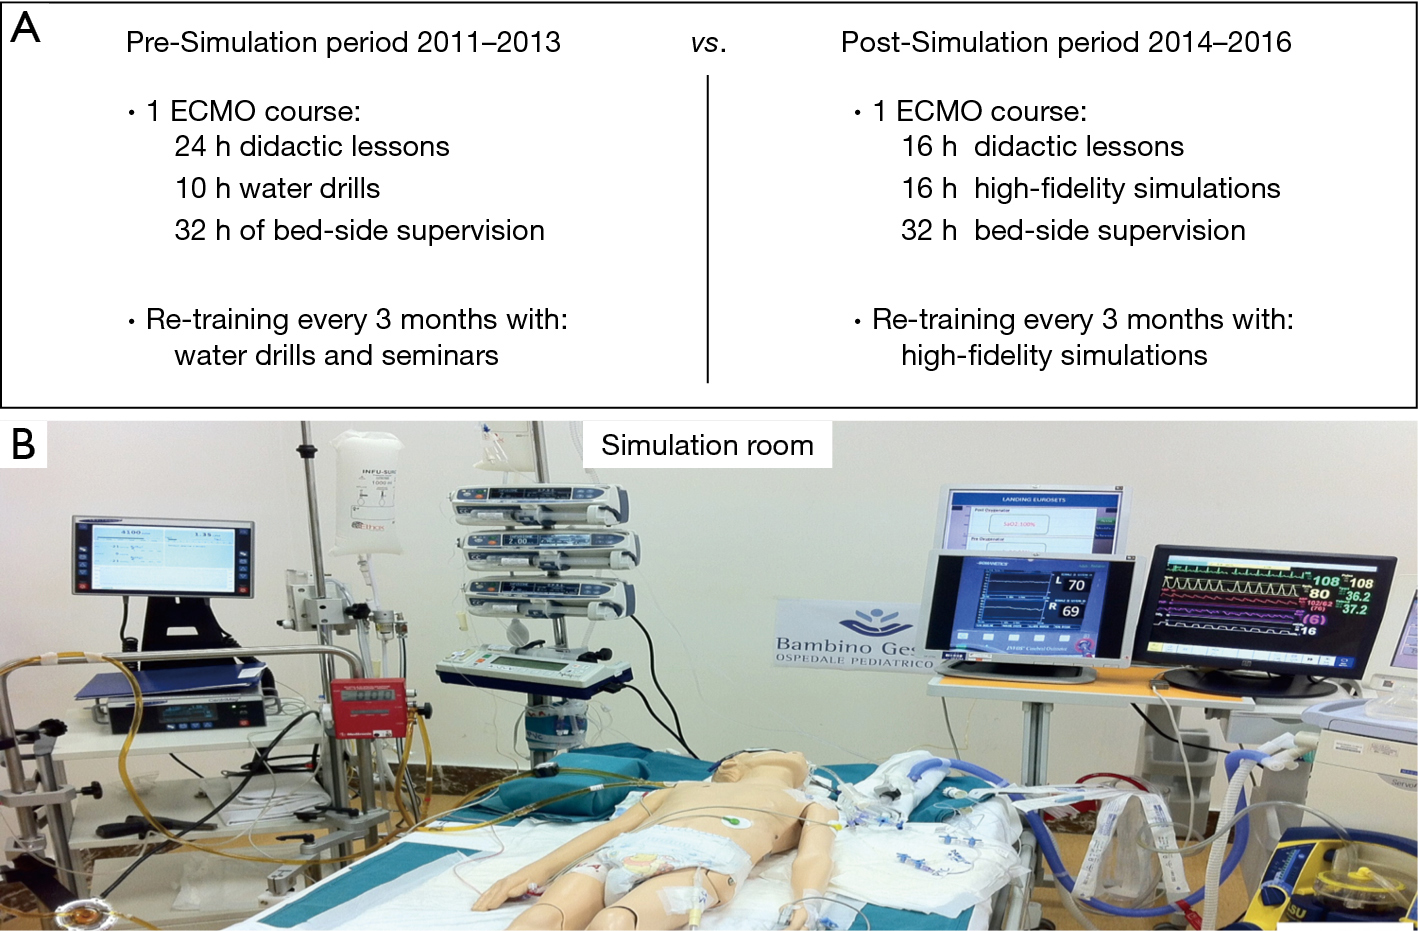 The introduction of a high-fidelity simulation program for